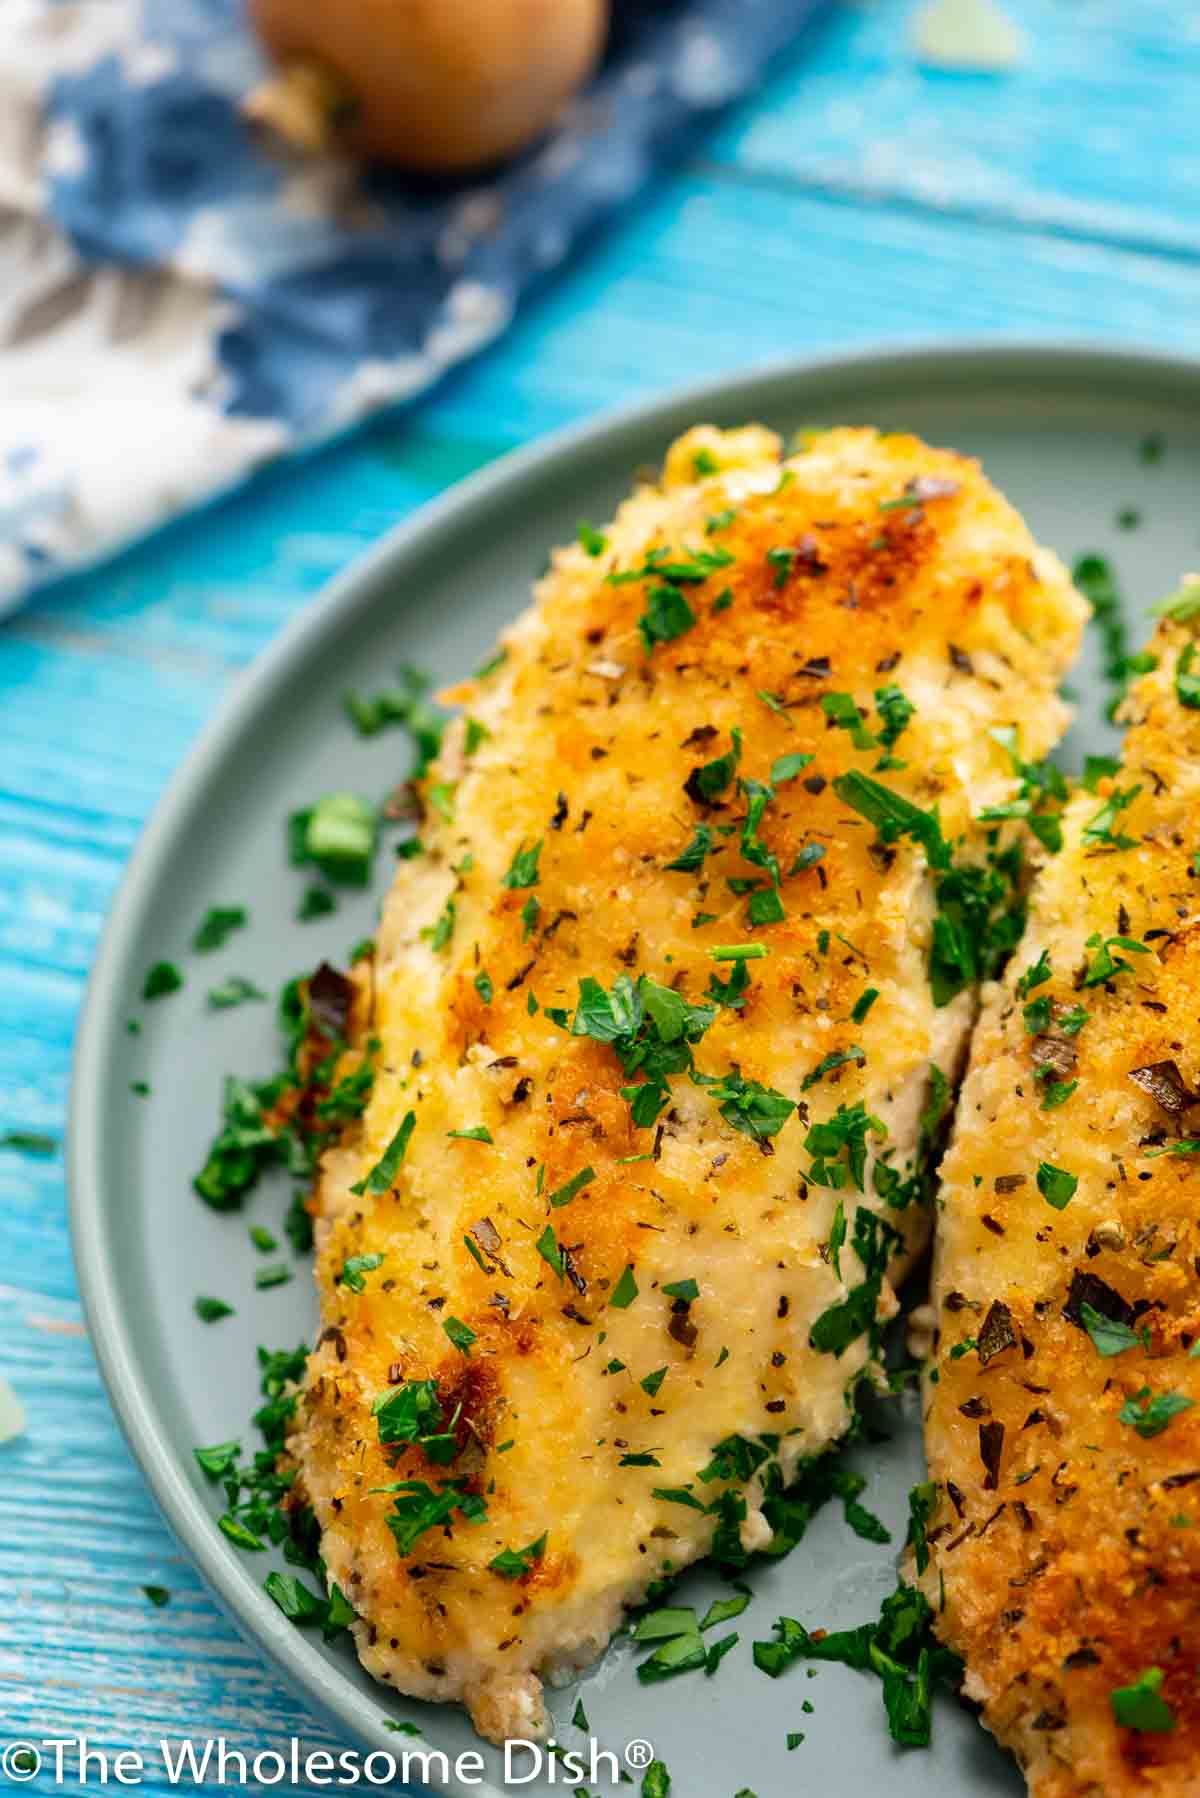 baked parmesan crusted chicken breast on a plate